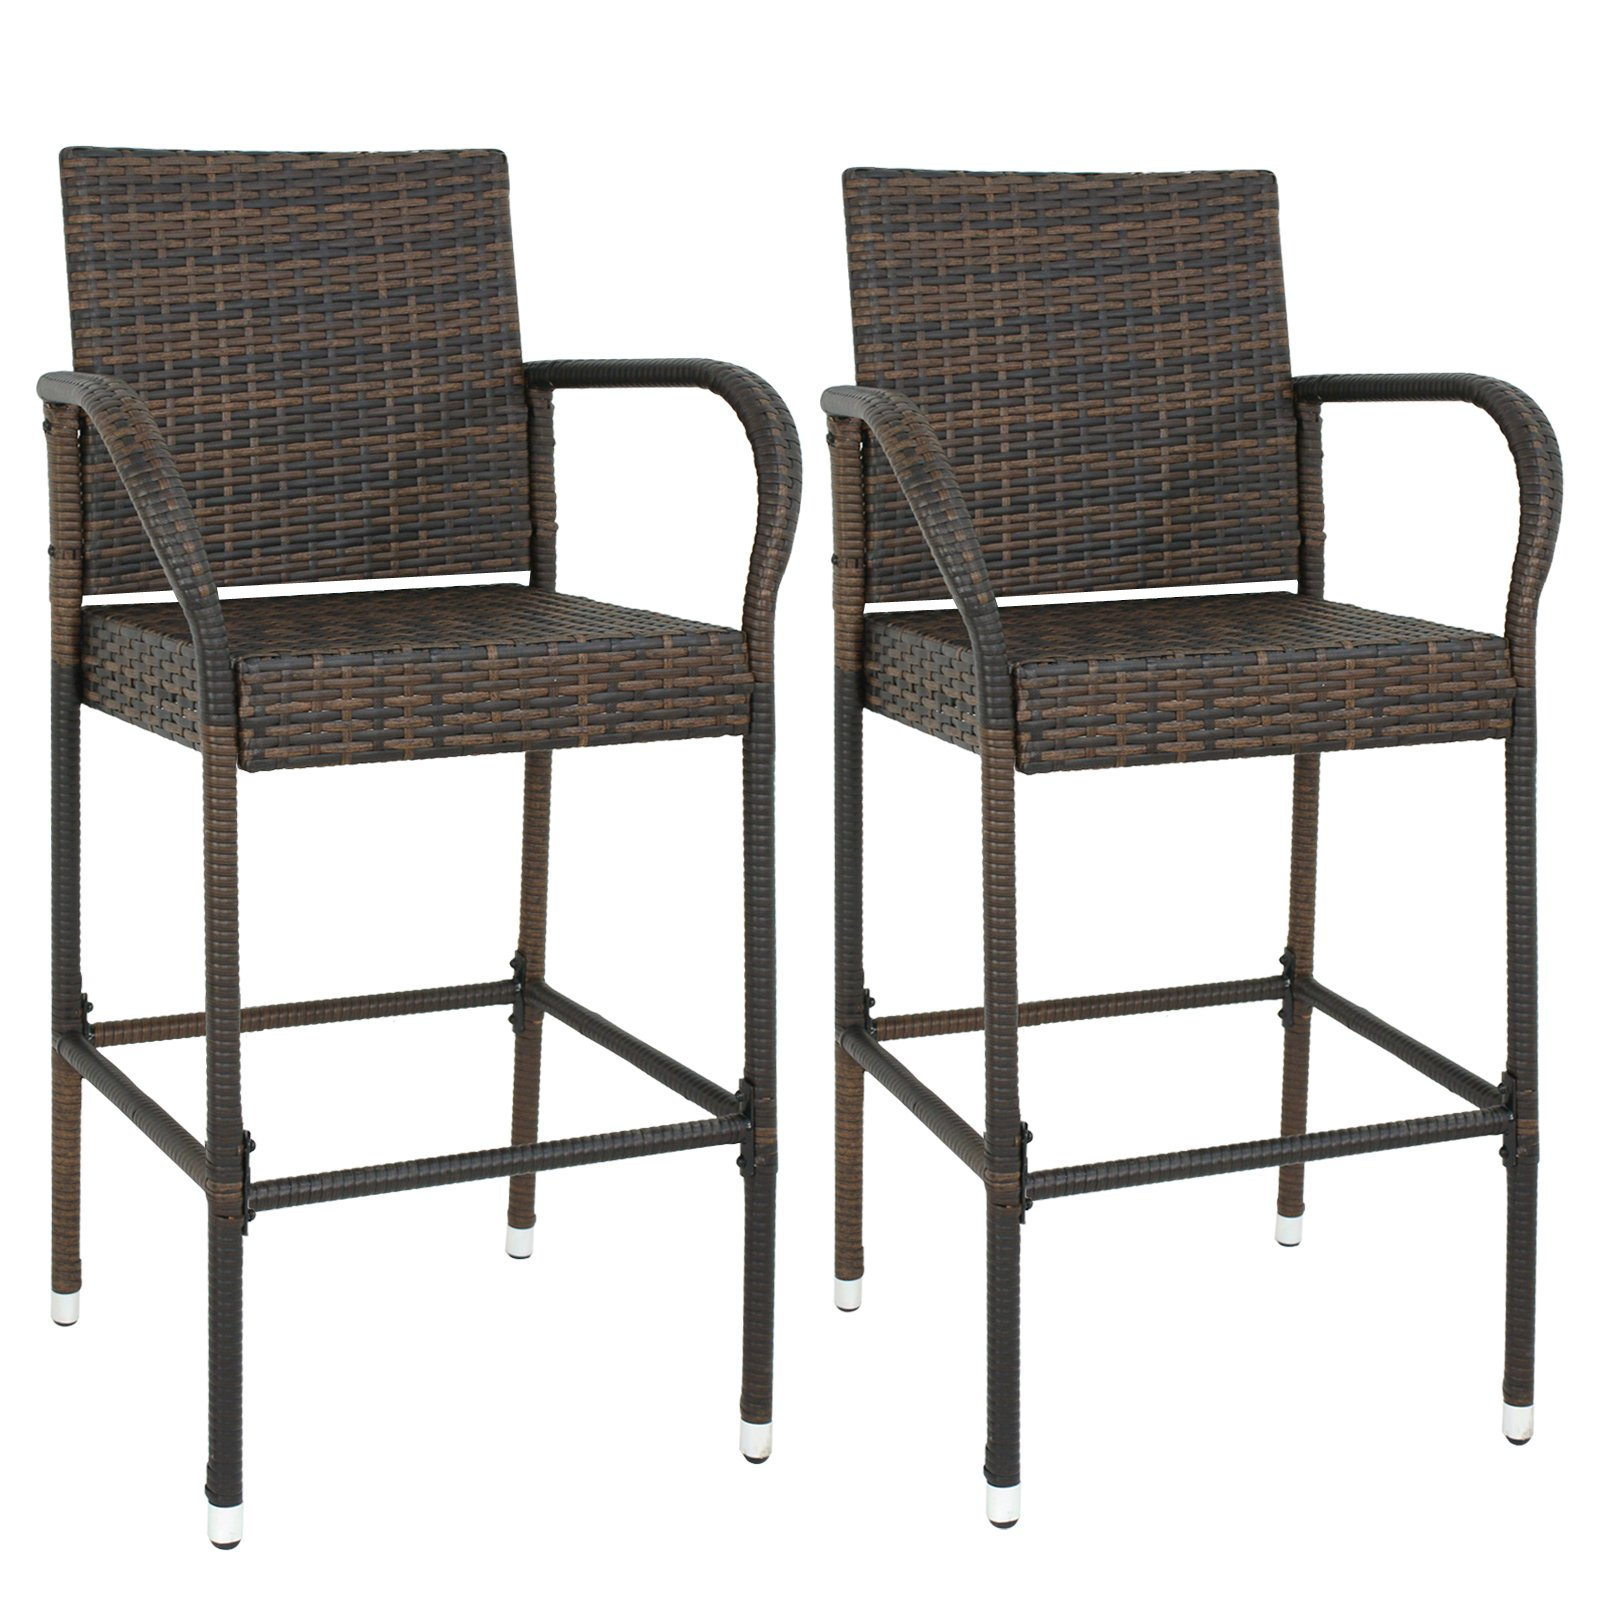 SUPER DEAL Wicker Bar Stool Outdoor Backyard Rattan Chair Patio Furniture Chair w/Iron Frame, Armrest and Footrest, Set of 4 by SUPER DEAL (Image #8)